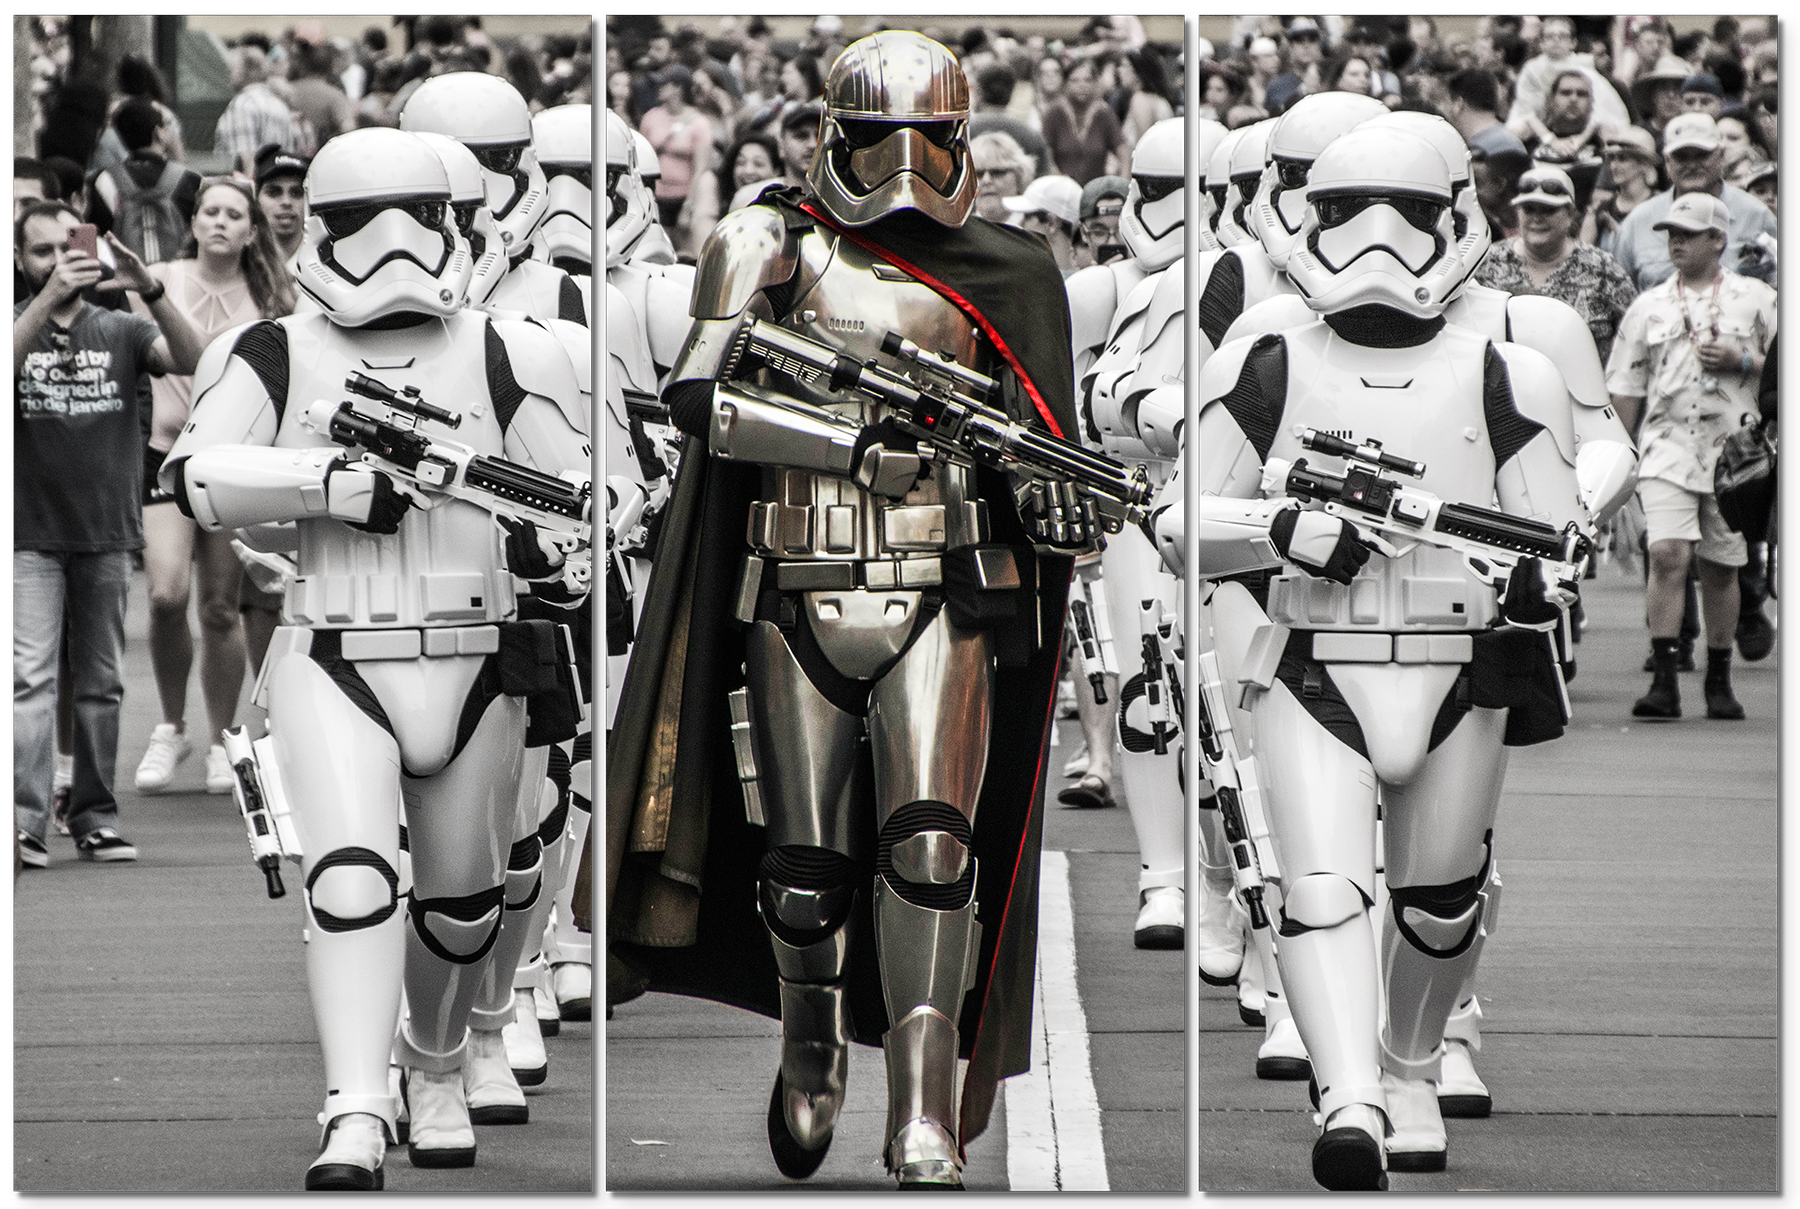 Stormtroopers march khhgu1